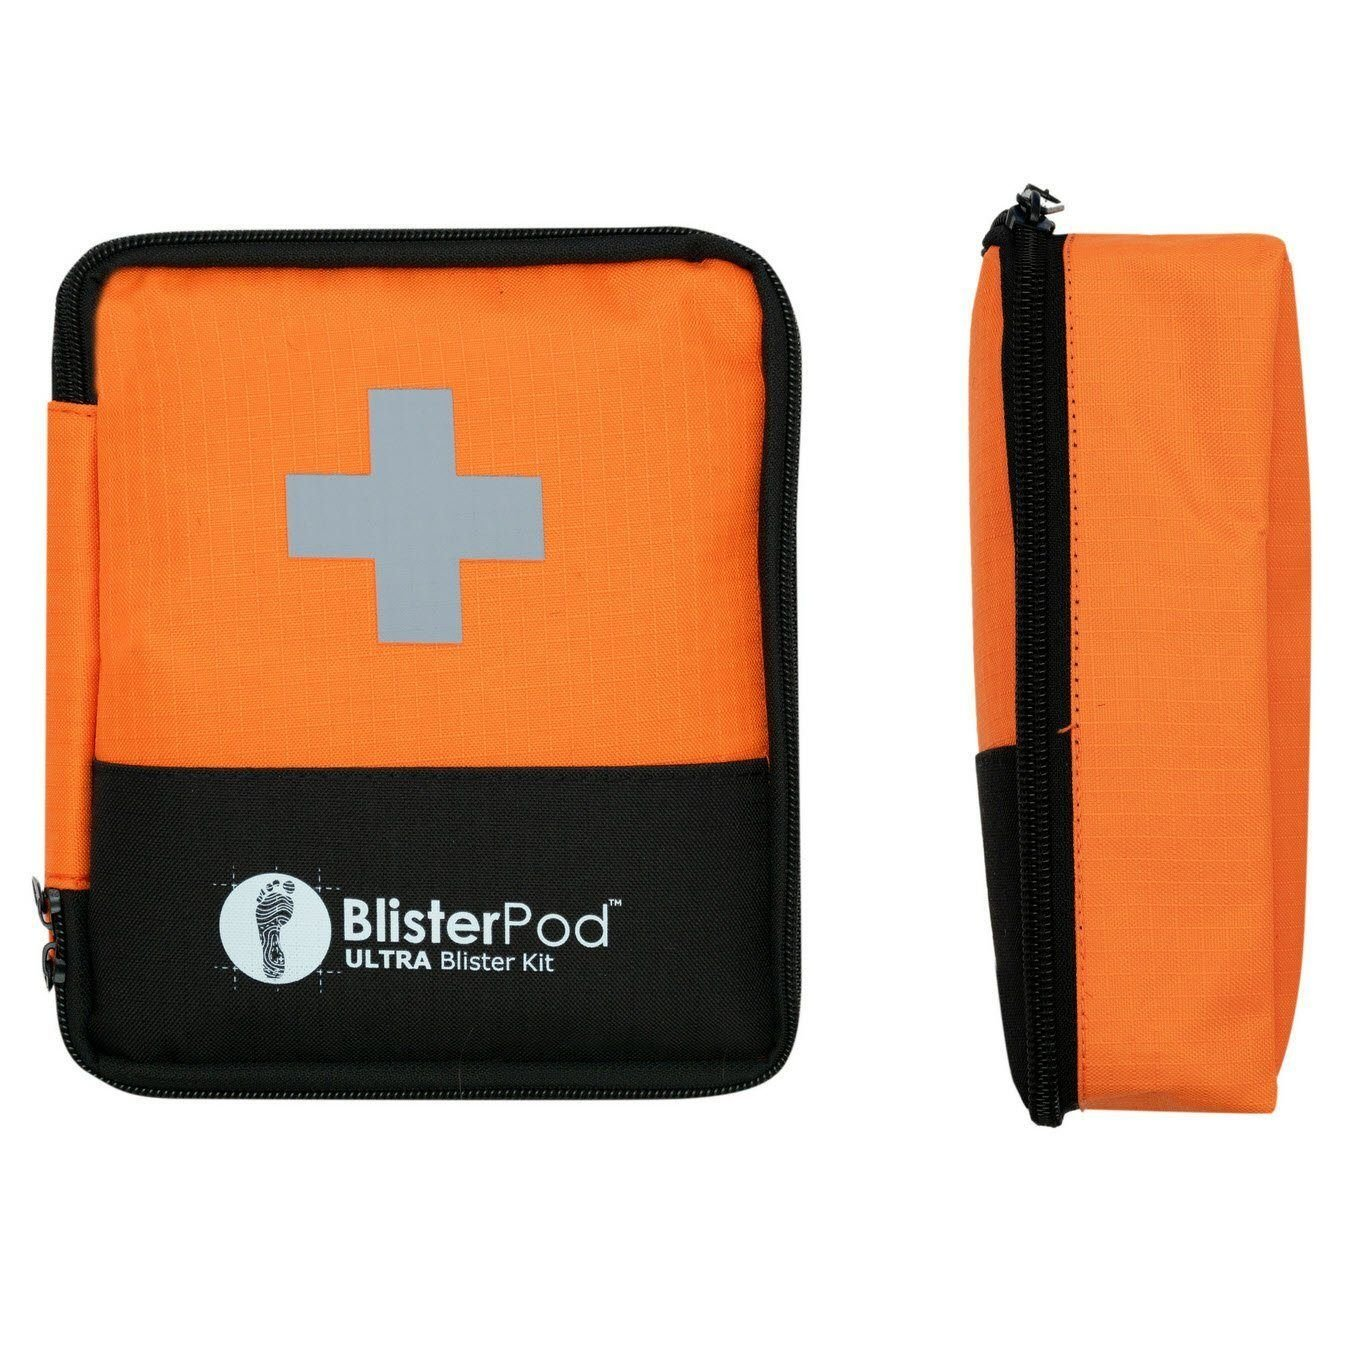 blisterpod ultra blister kit